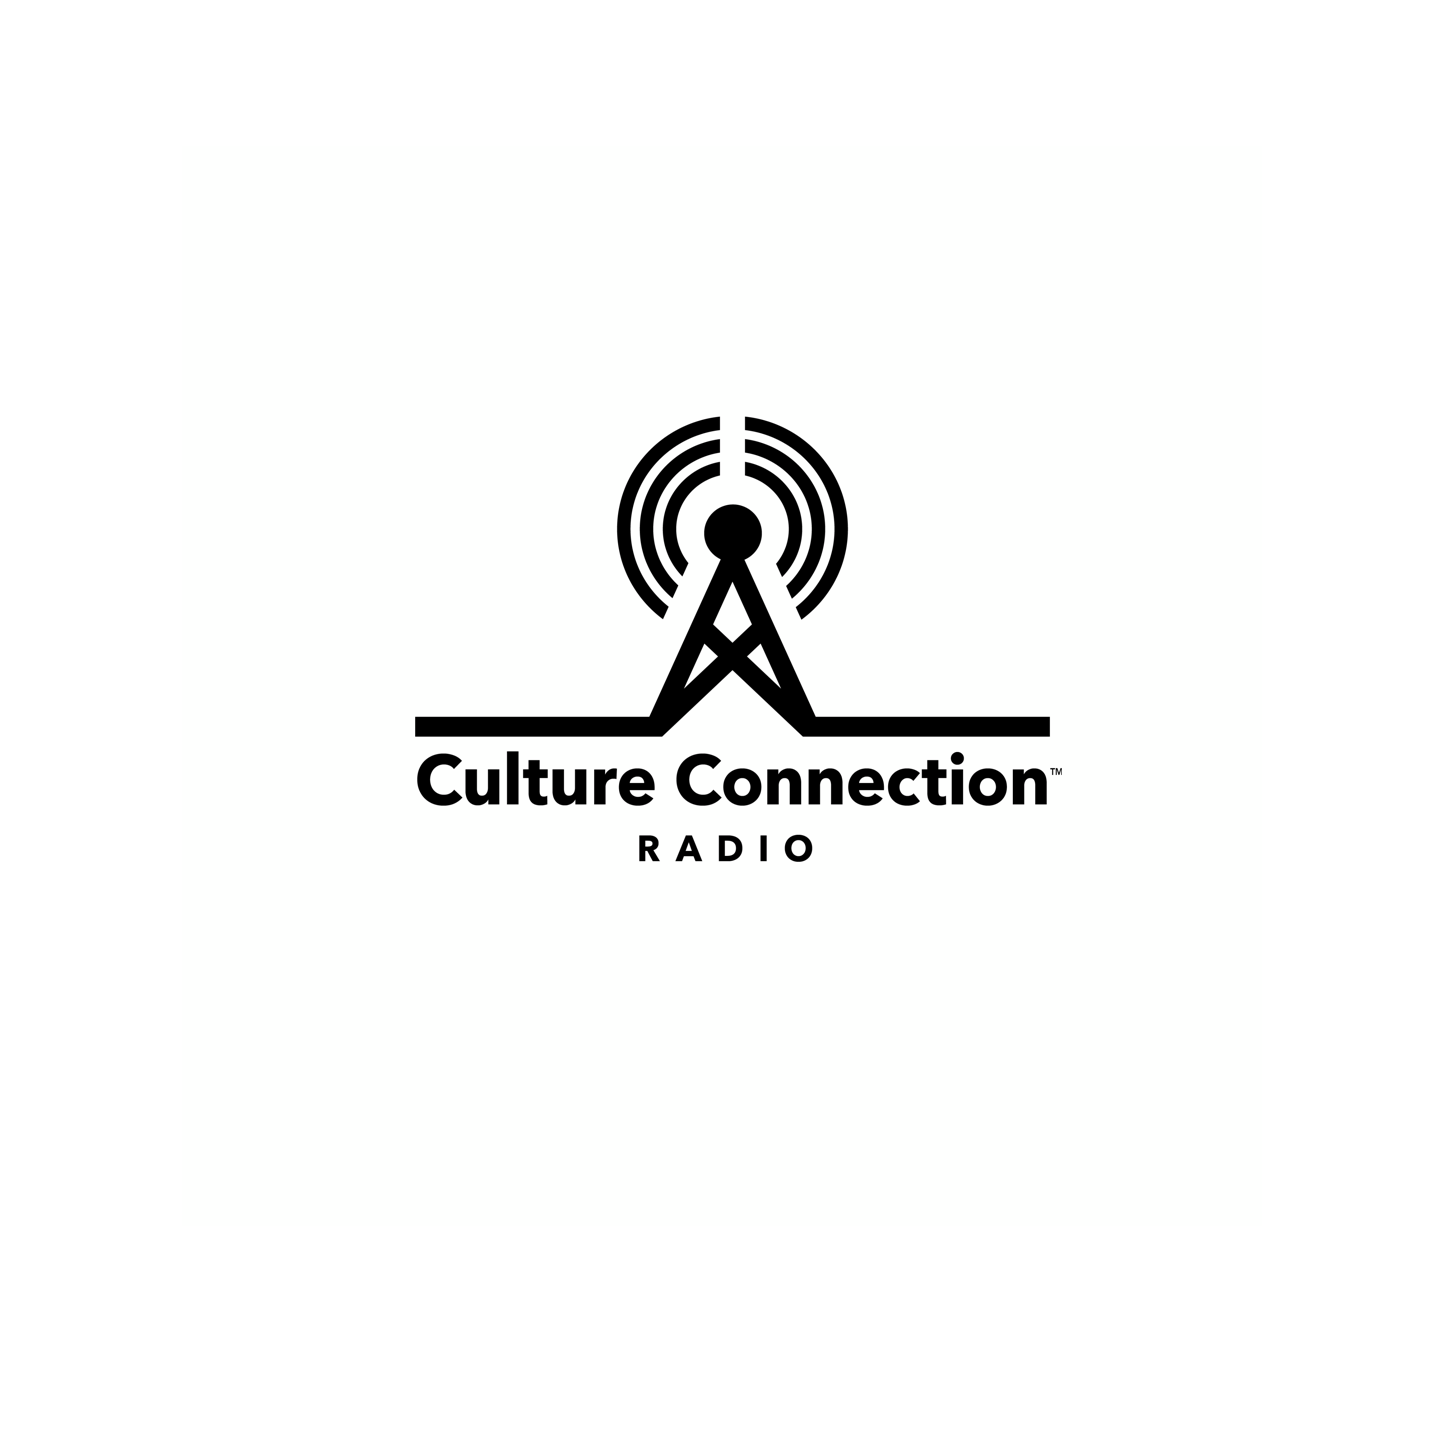 Culture Connection Radio